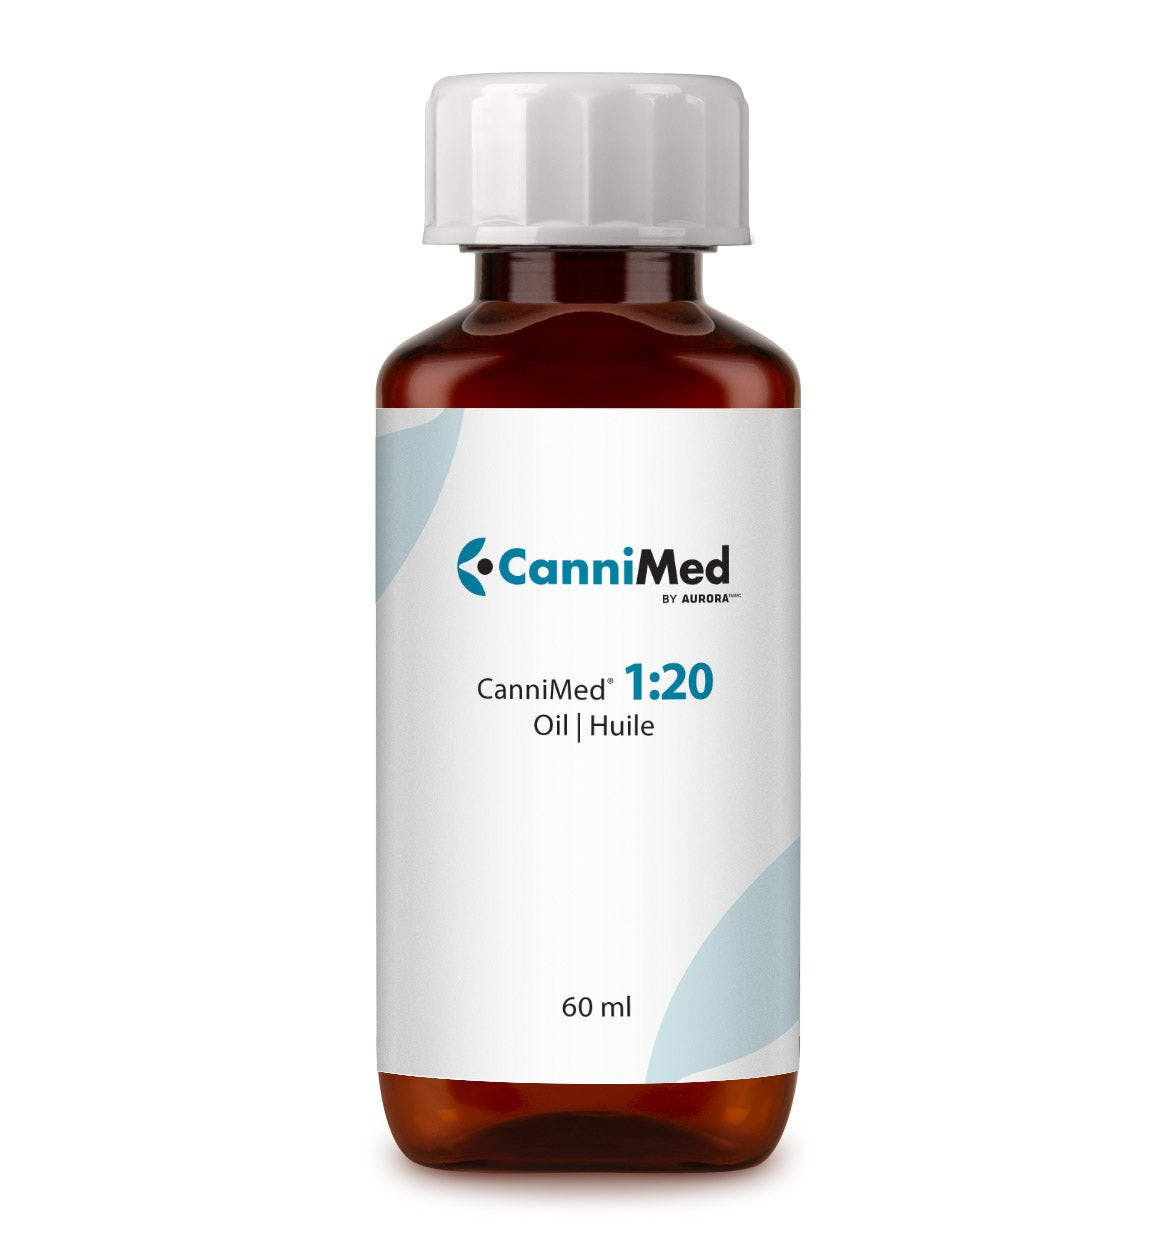 CanniMed Oil 1:20